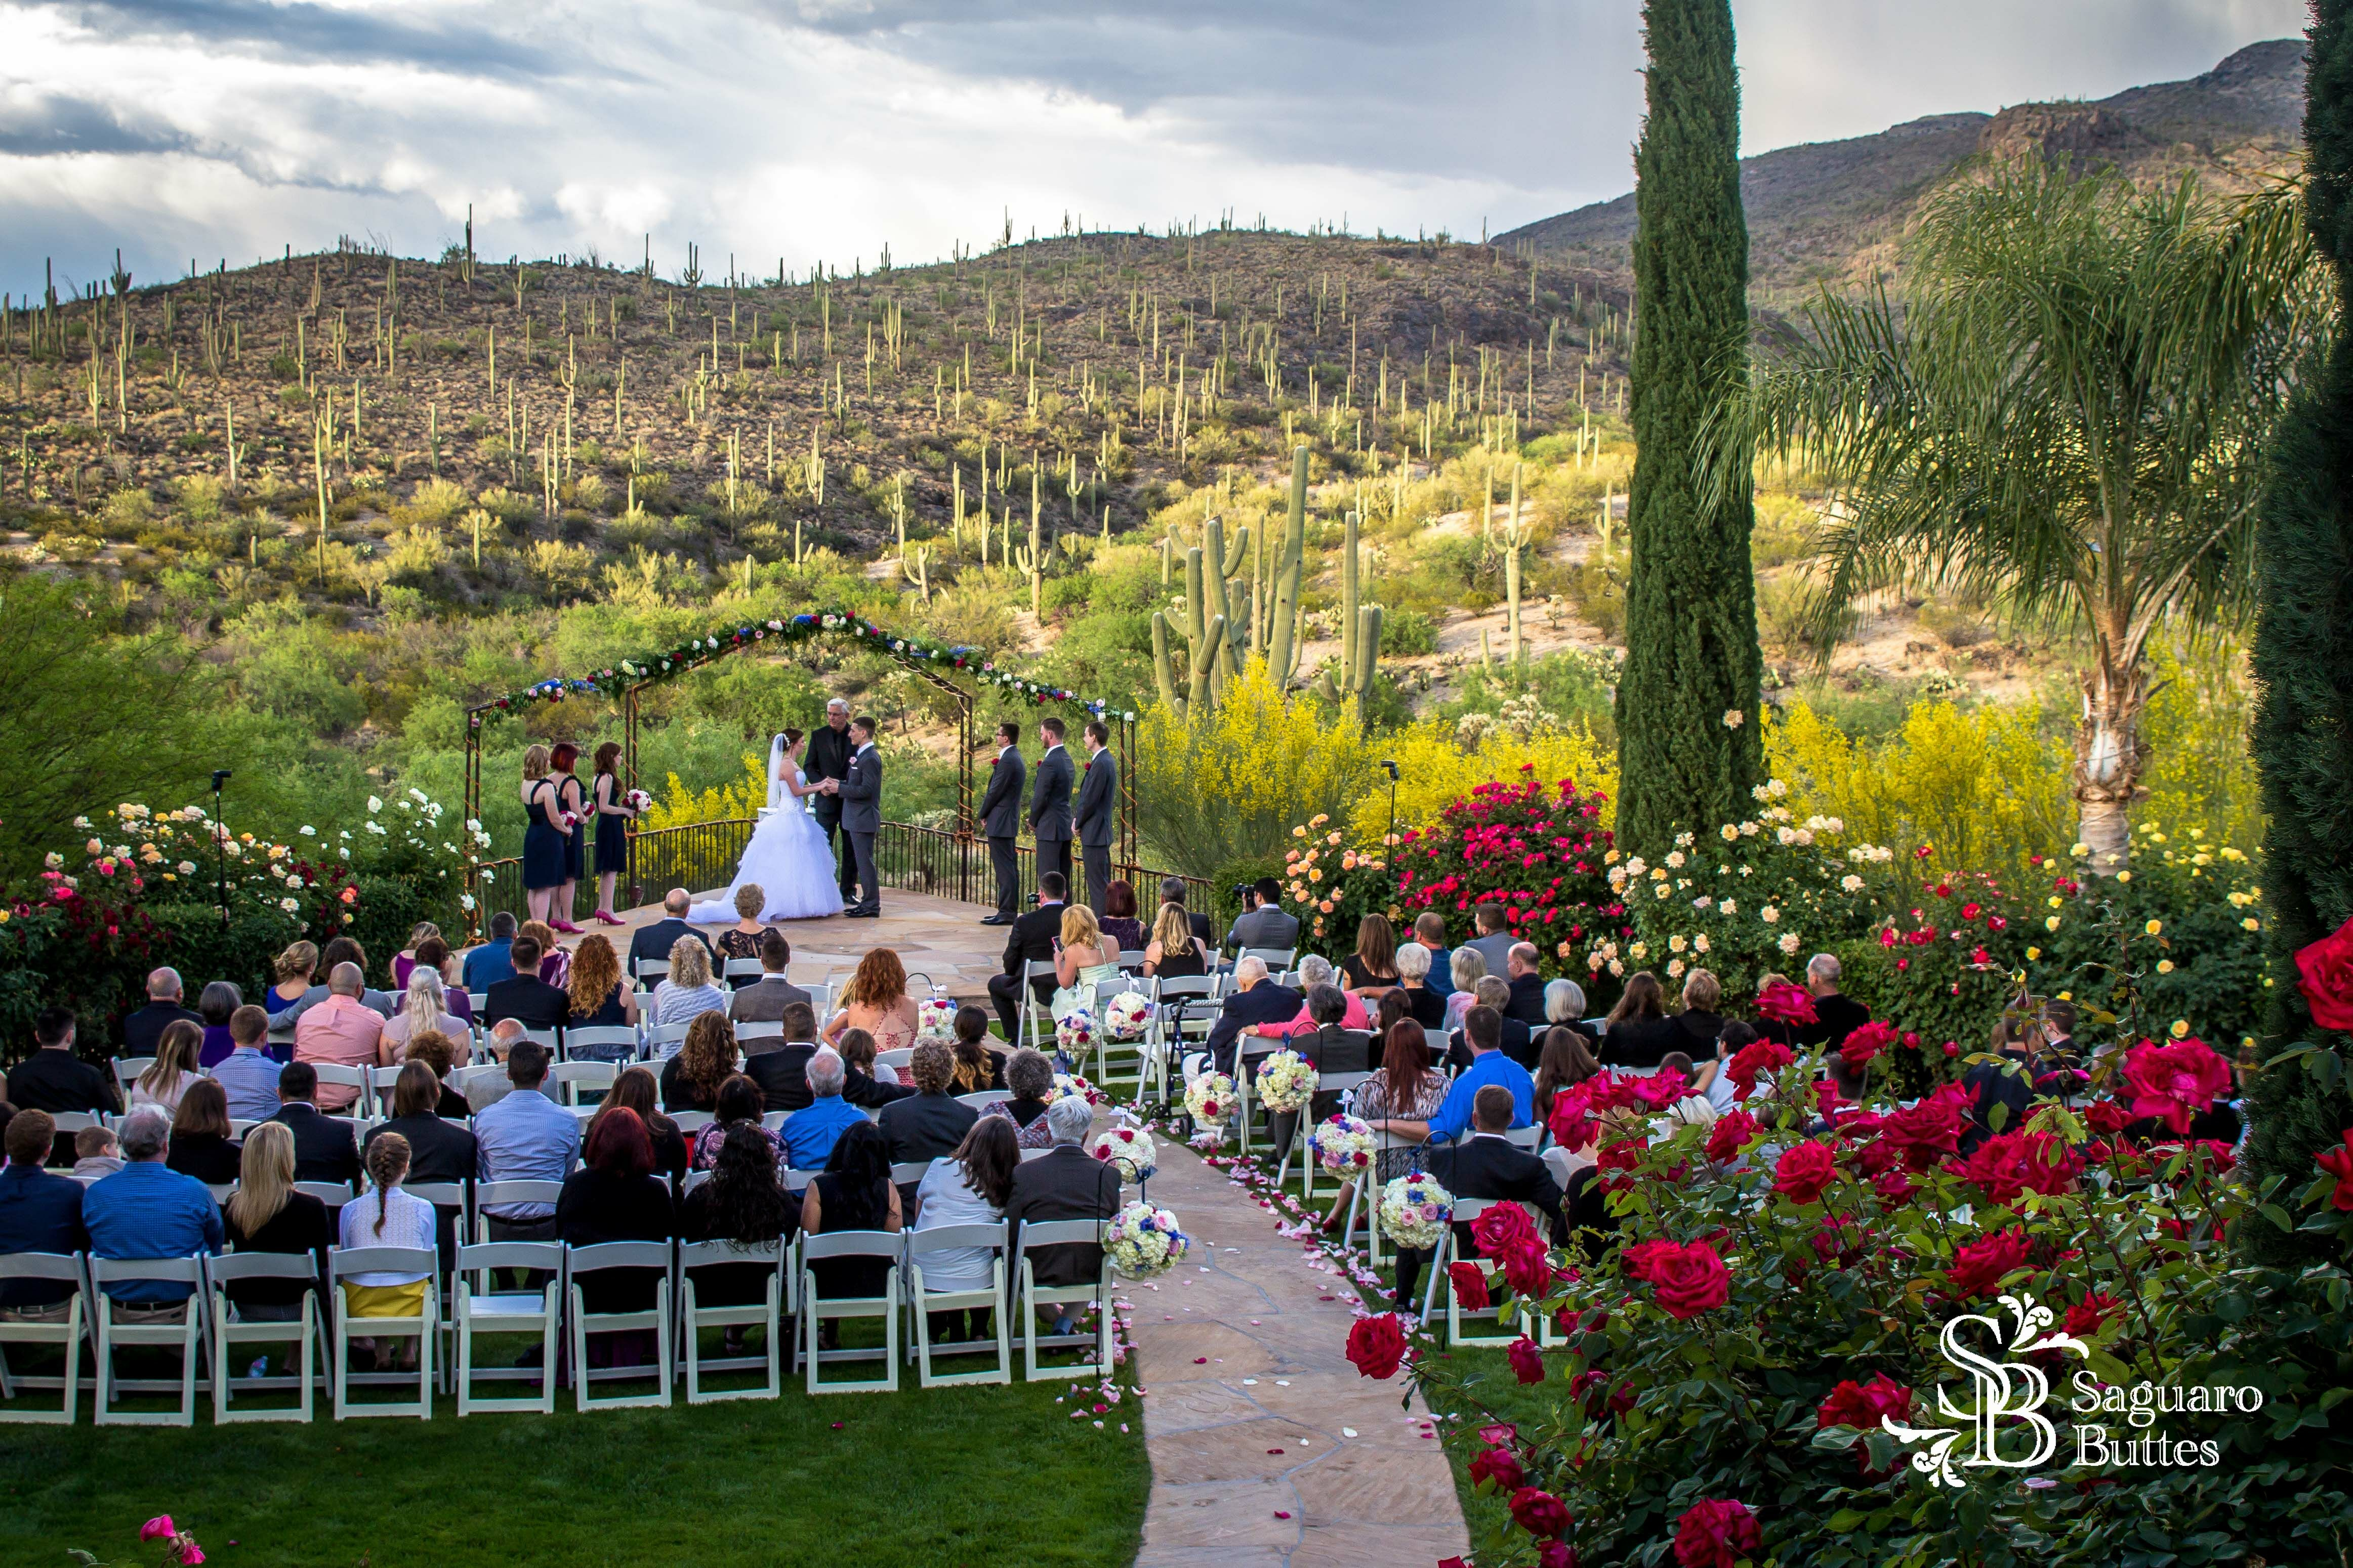 Wedding reception venues in tucson az the knot saguaro buttes junglespirit